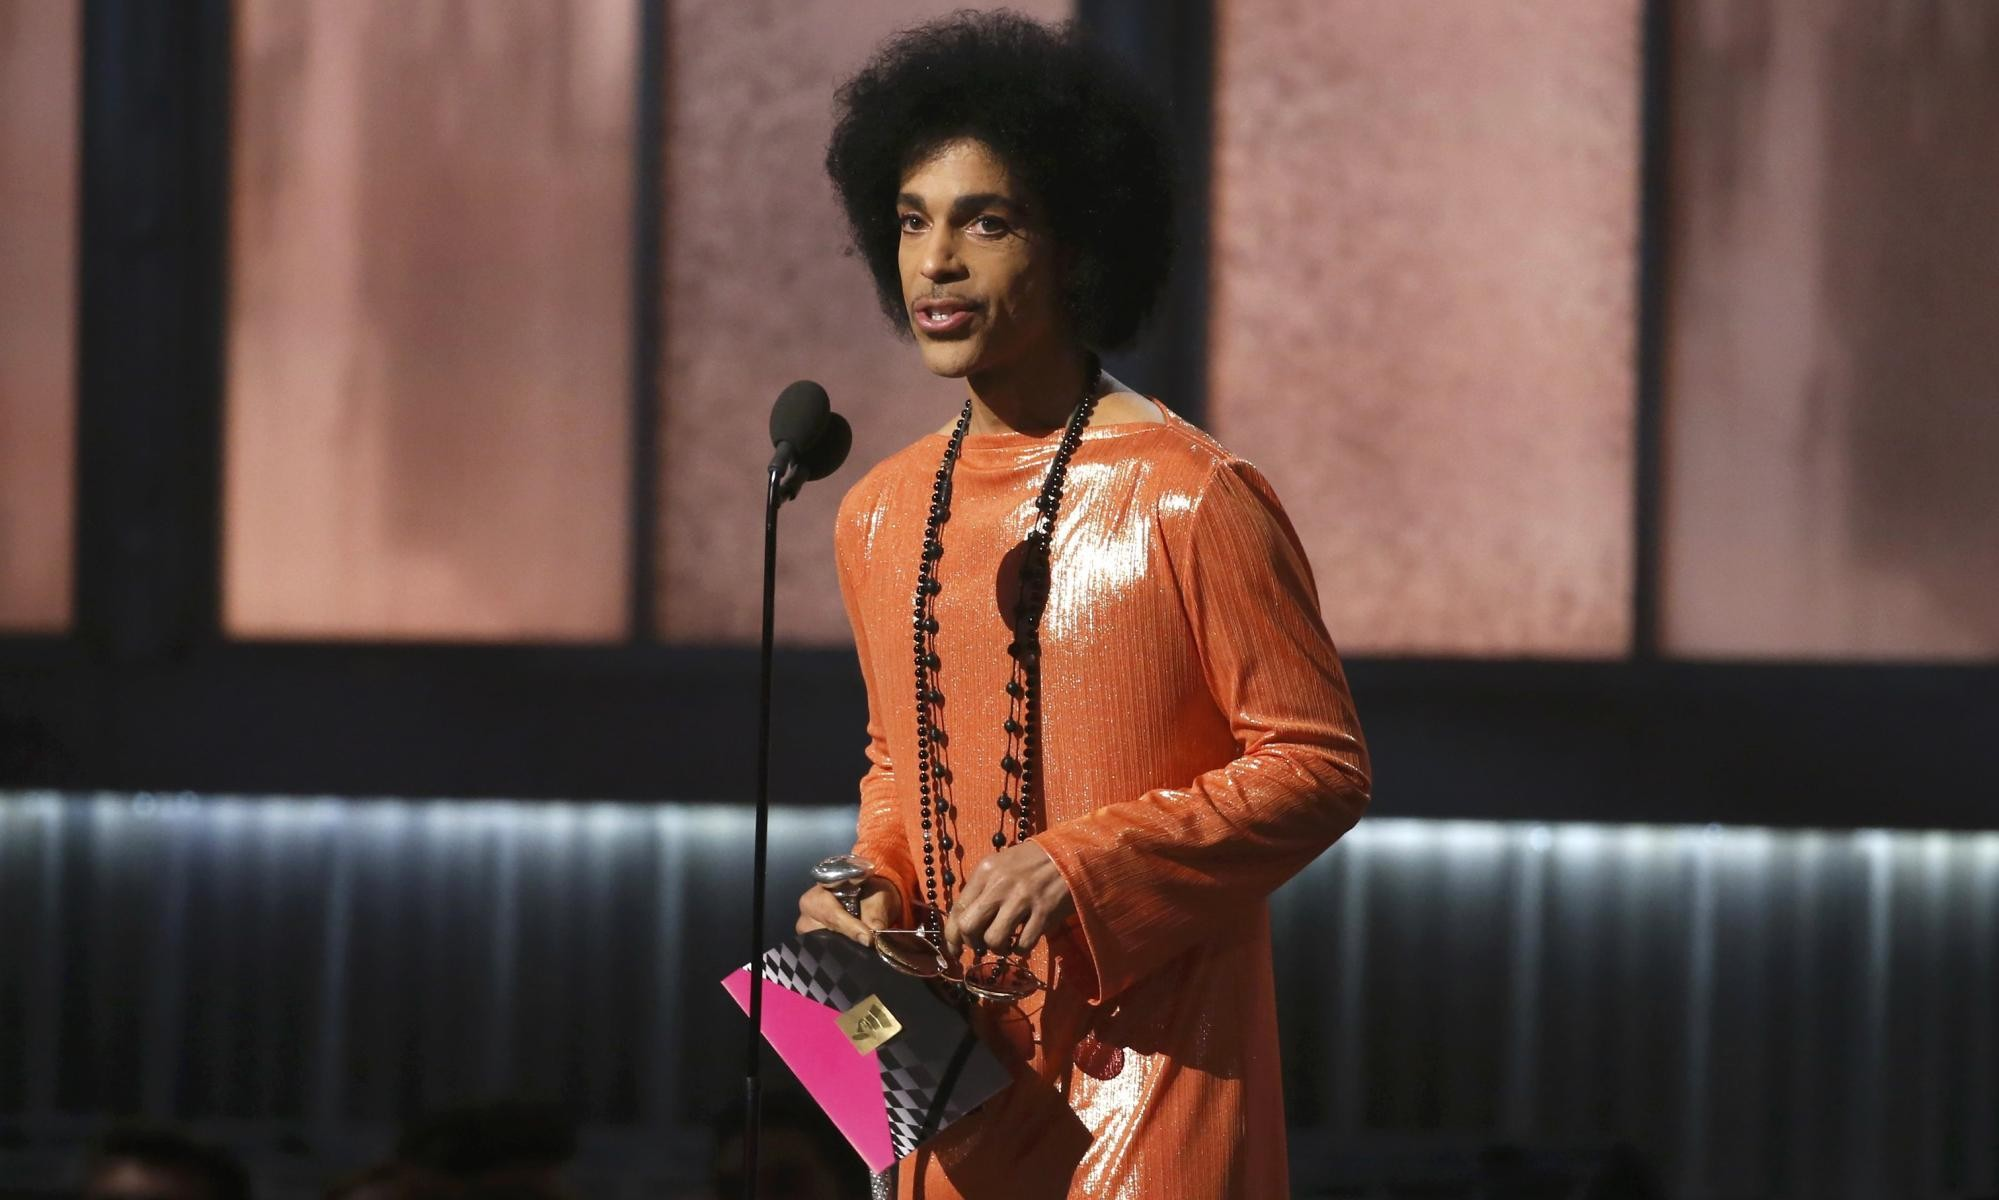 Grammy awards 2015 best quotes: Prince, Madonna, Obama and more